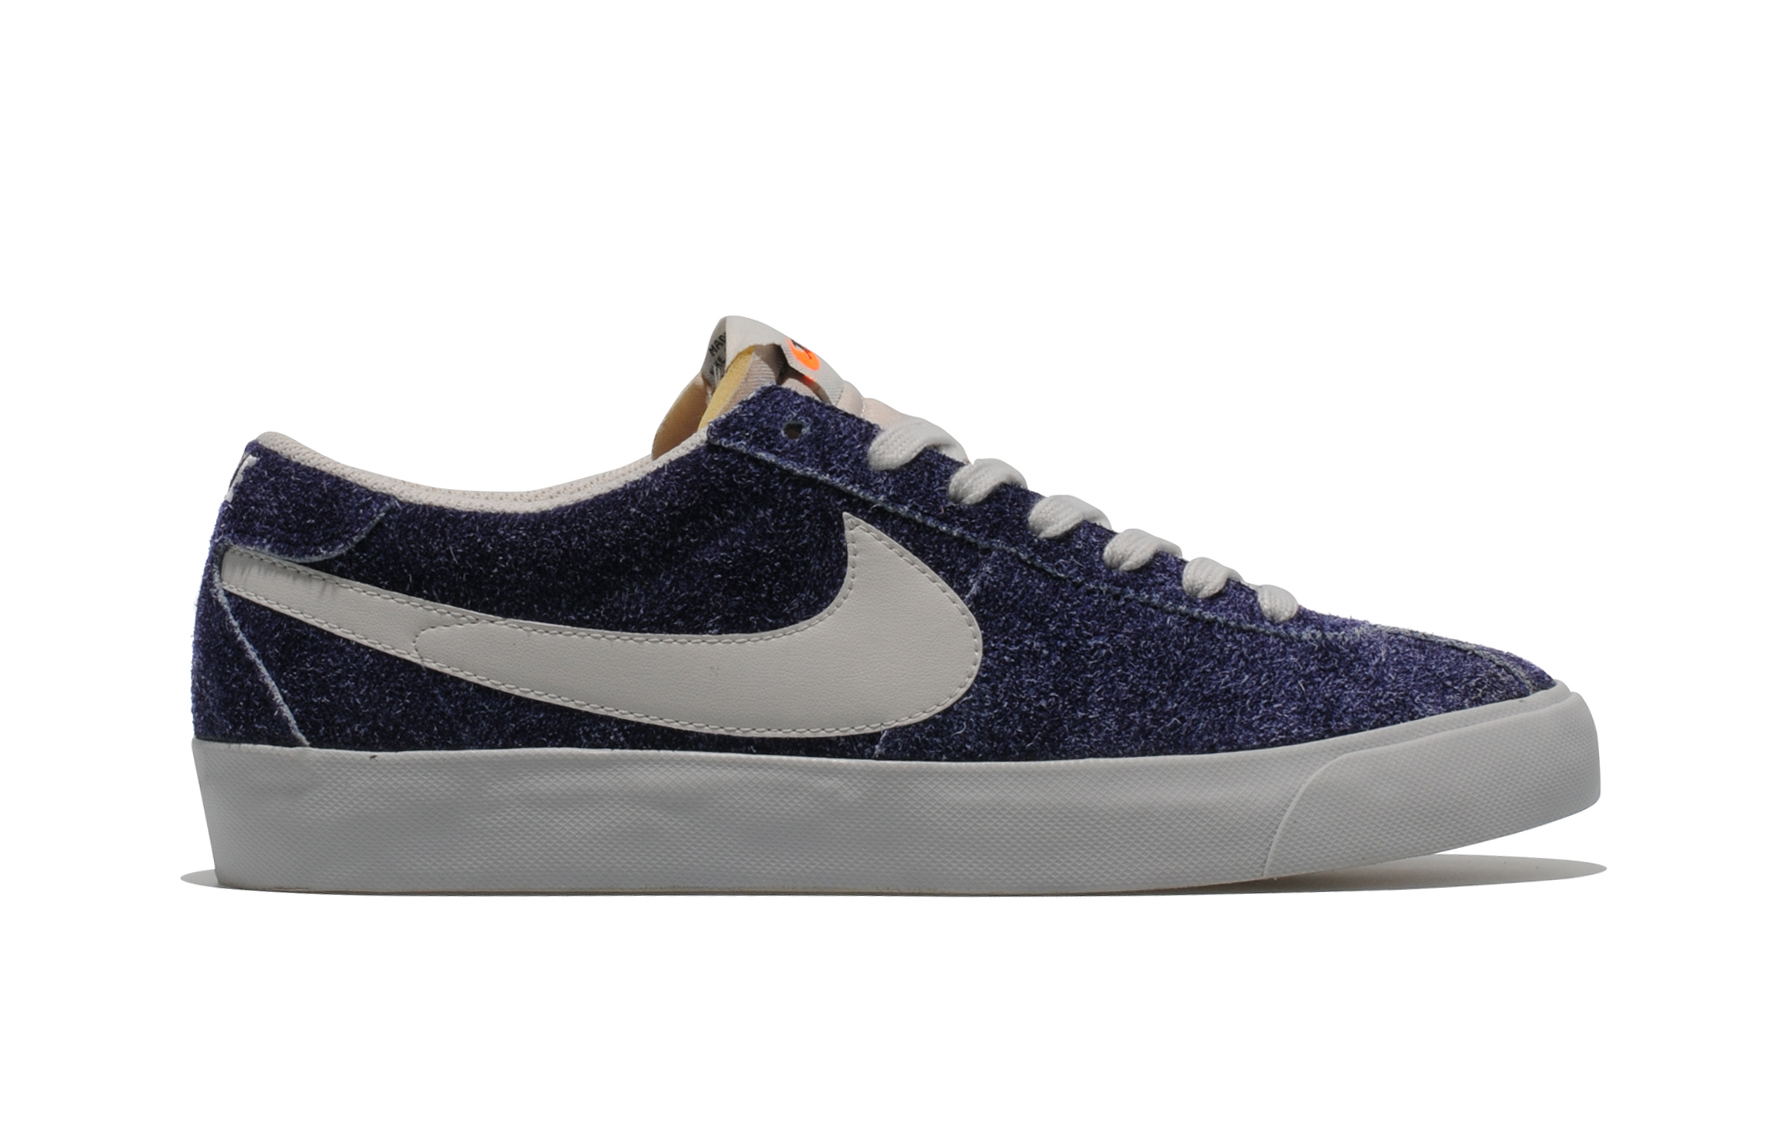 Nike Bruin VNTG size? Exclusives